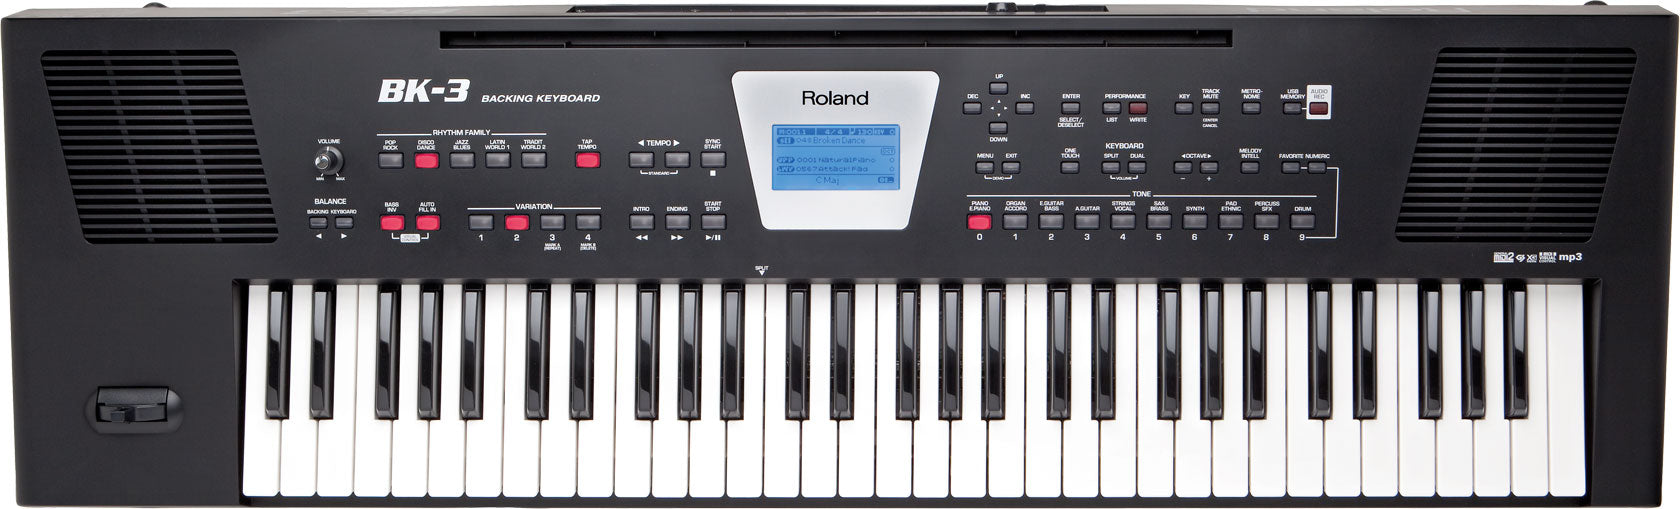 Roland BK-3 Backing Keyboard - Black